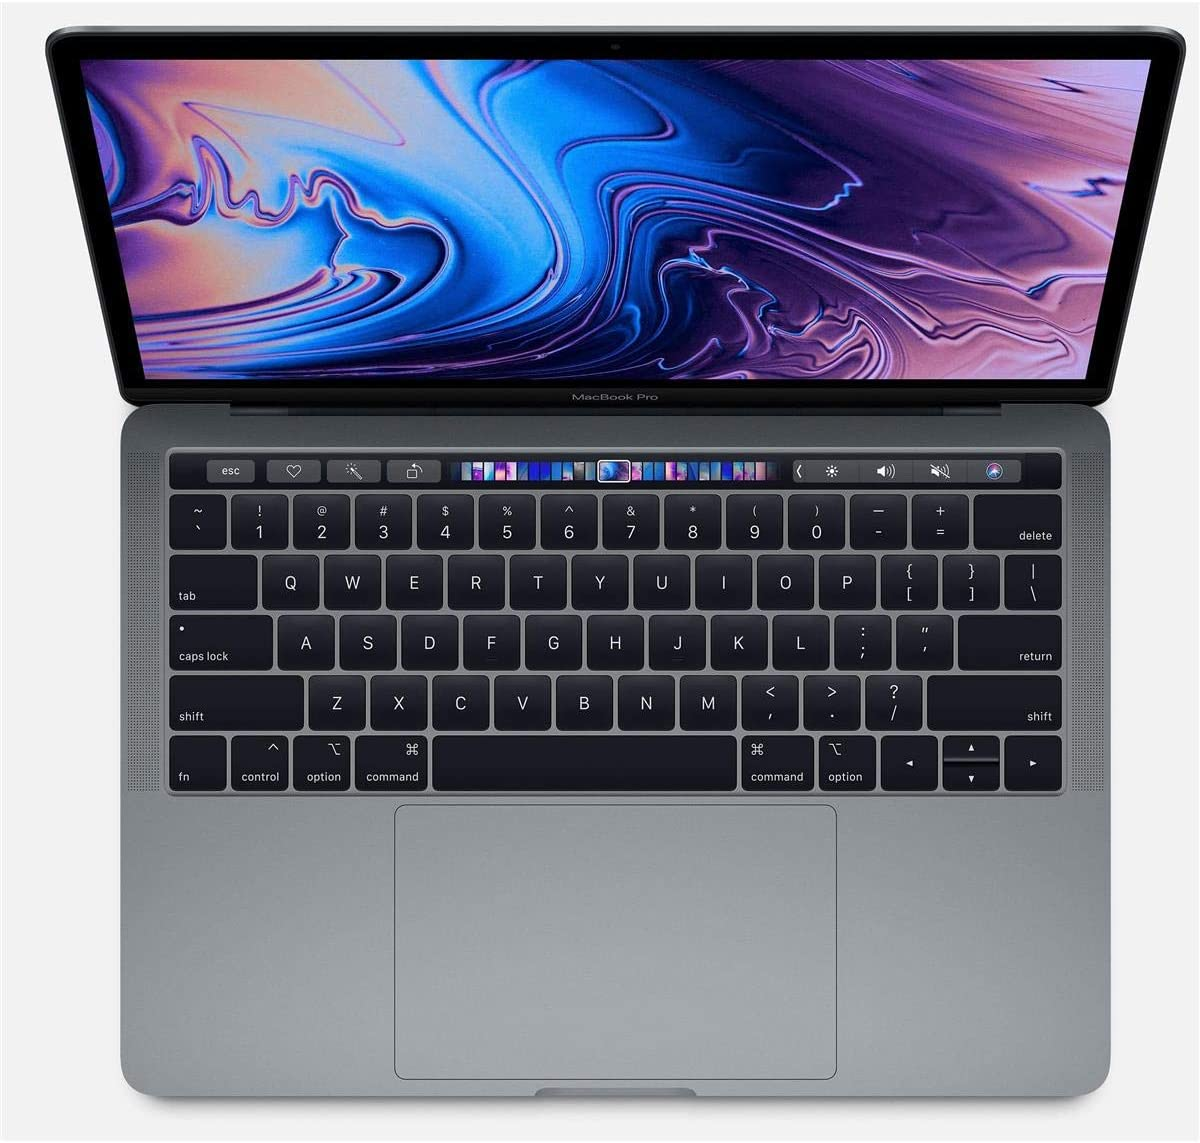 """Apple 13.3"""" MacBook Pro with Touch Bar, 2.3GHz Quad-Core Intel Core i5, 16GB RAM, 1TB SSD, Iris Plus 655 - Space Gray (Mid 2018)"""